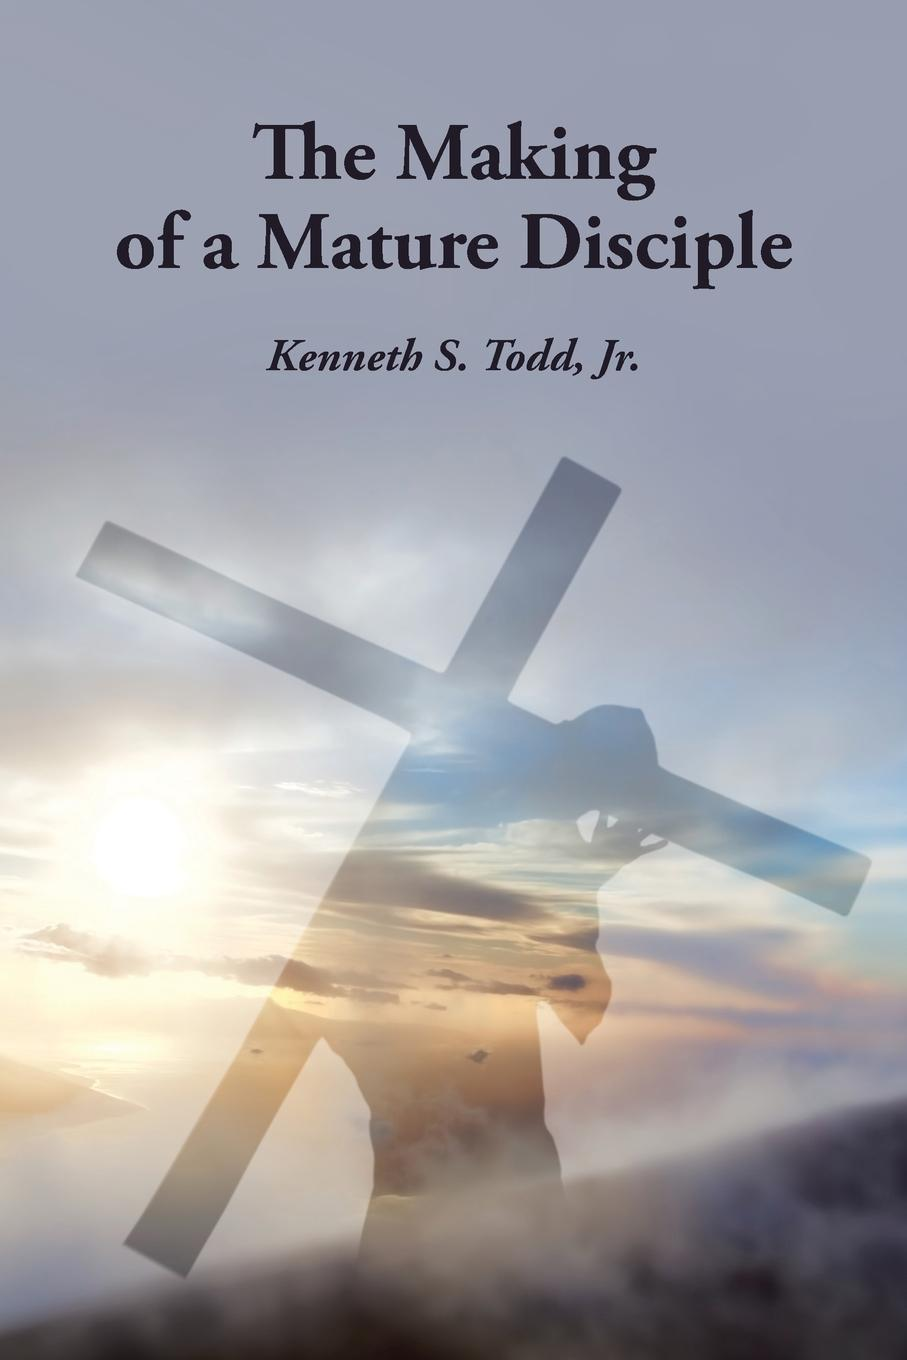 Jr. Kenneth S. Todd The Making of a Mature Disciple wrath of a mad god darkwar book 3